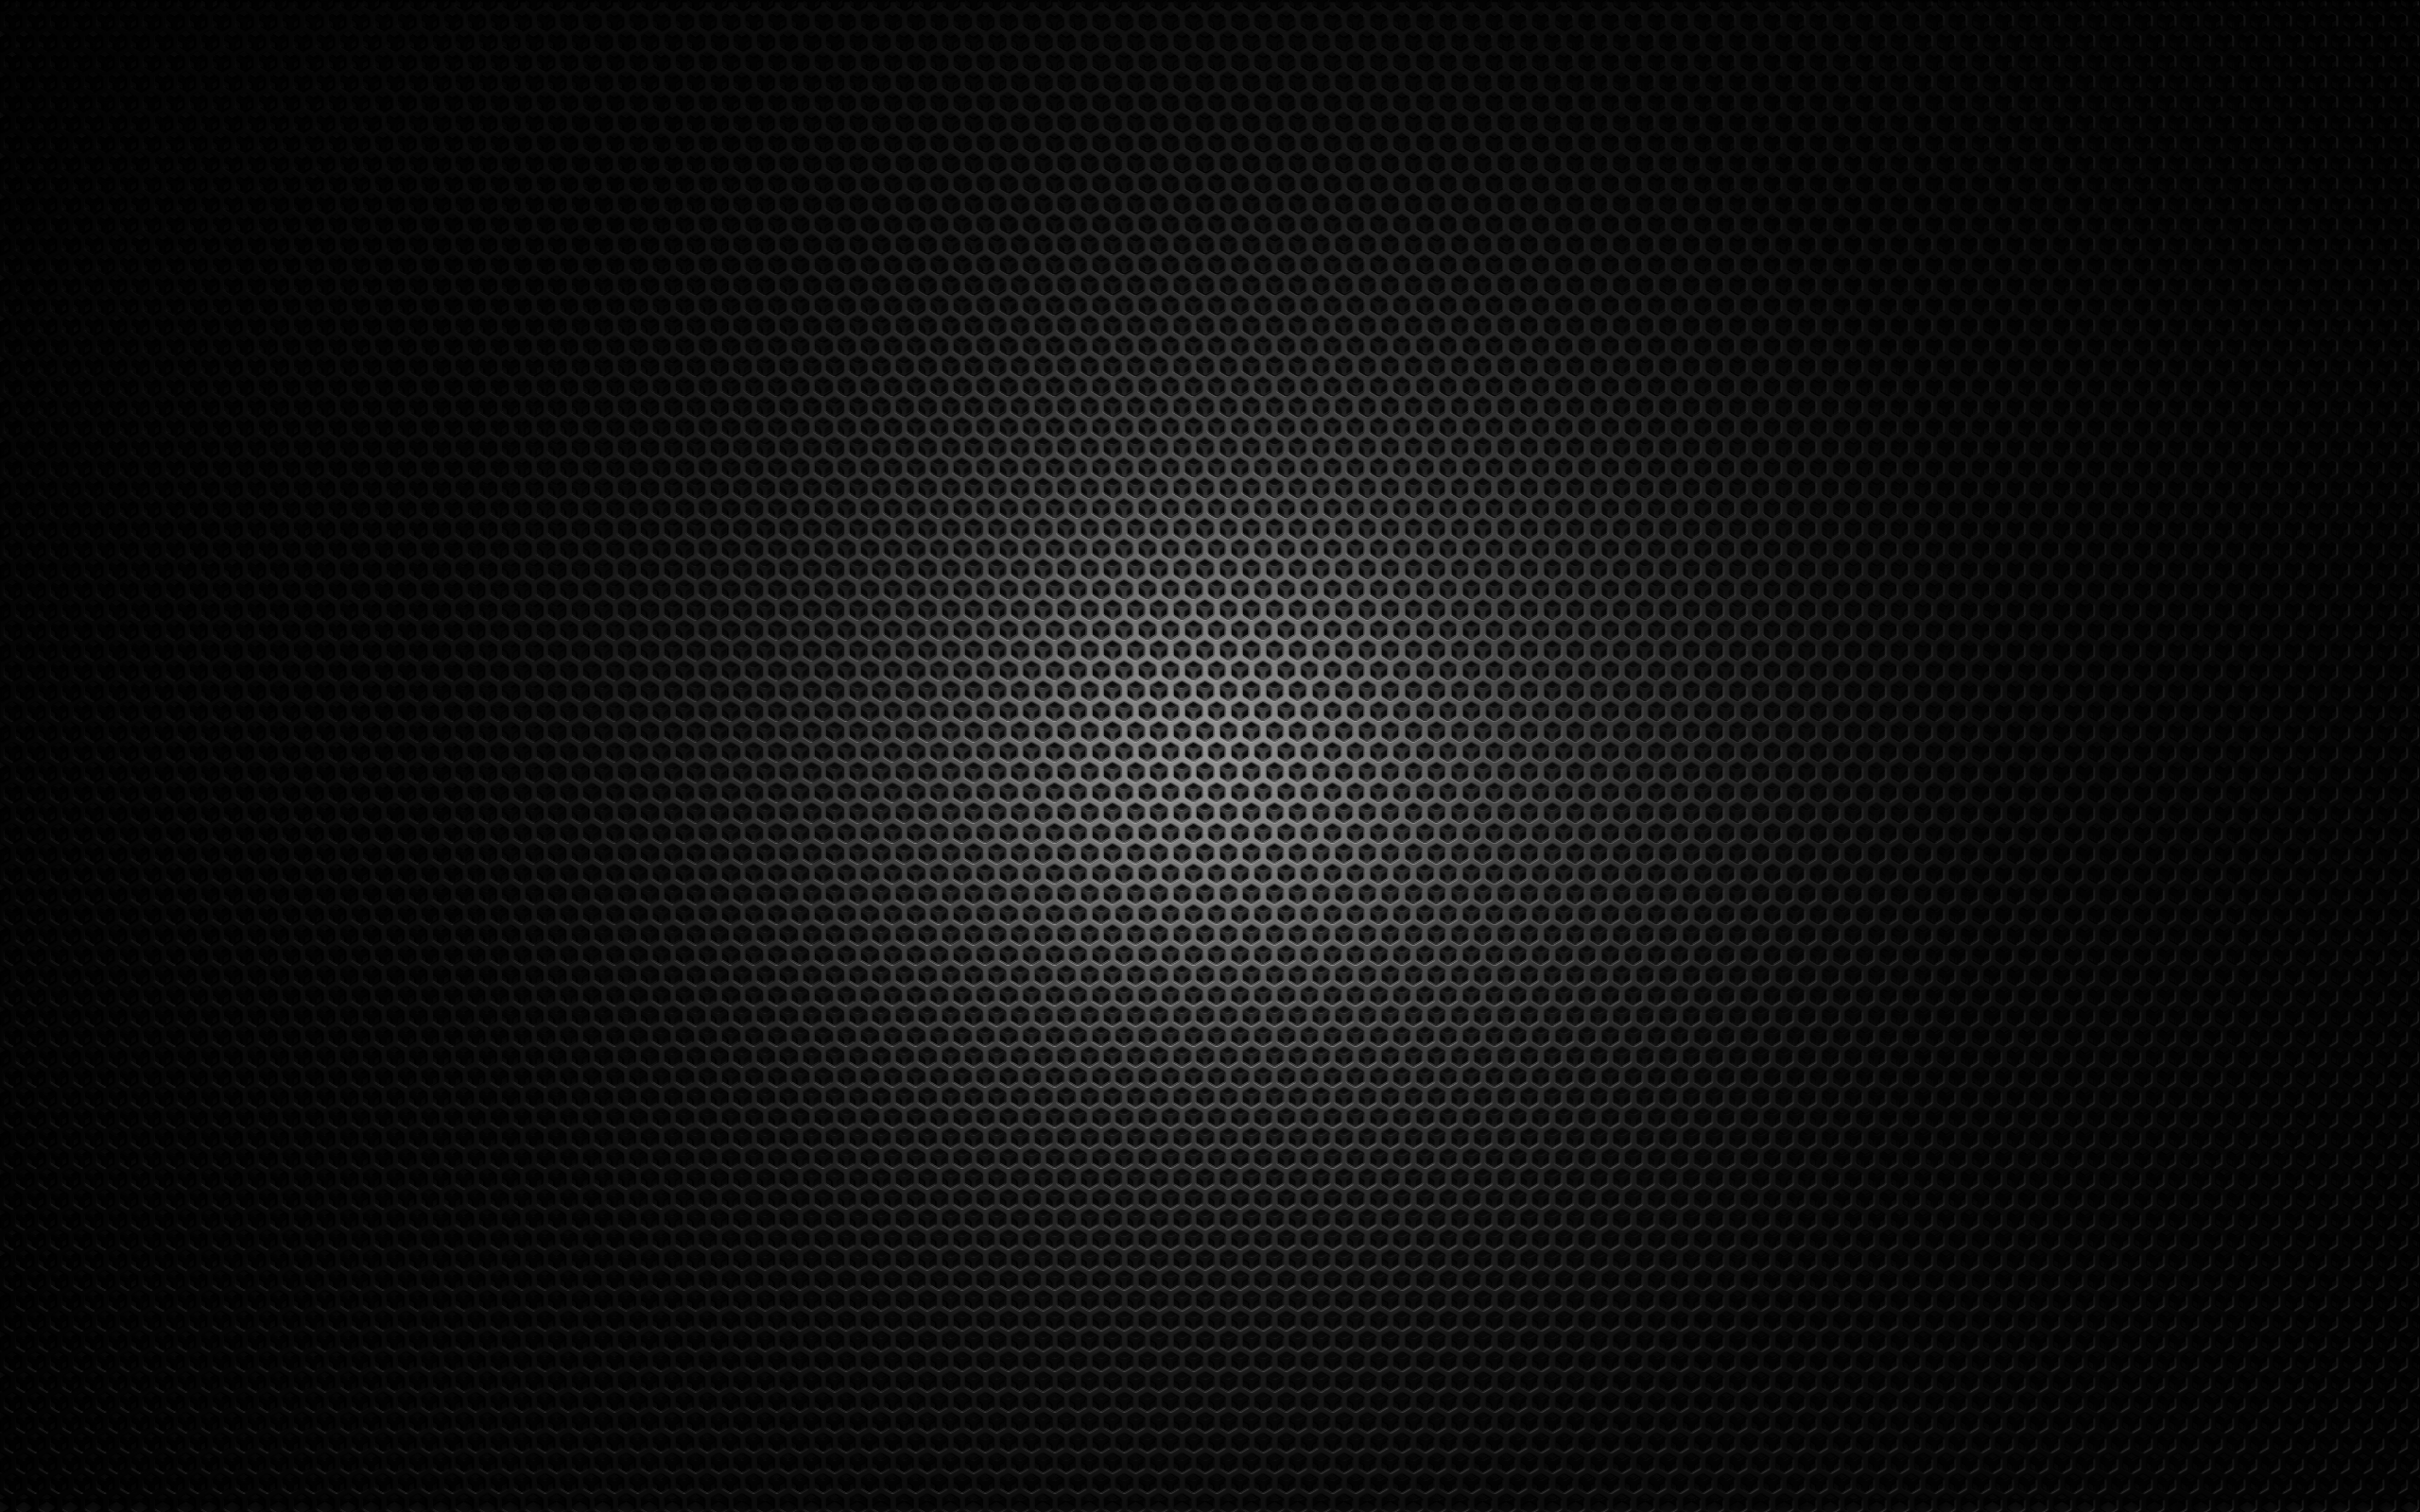 Black Carbon Wallpaper Wallpapersafari